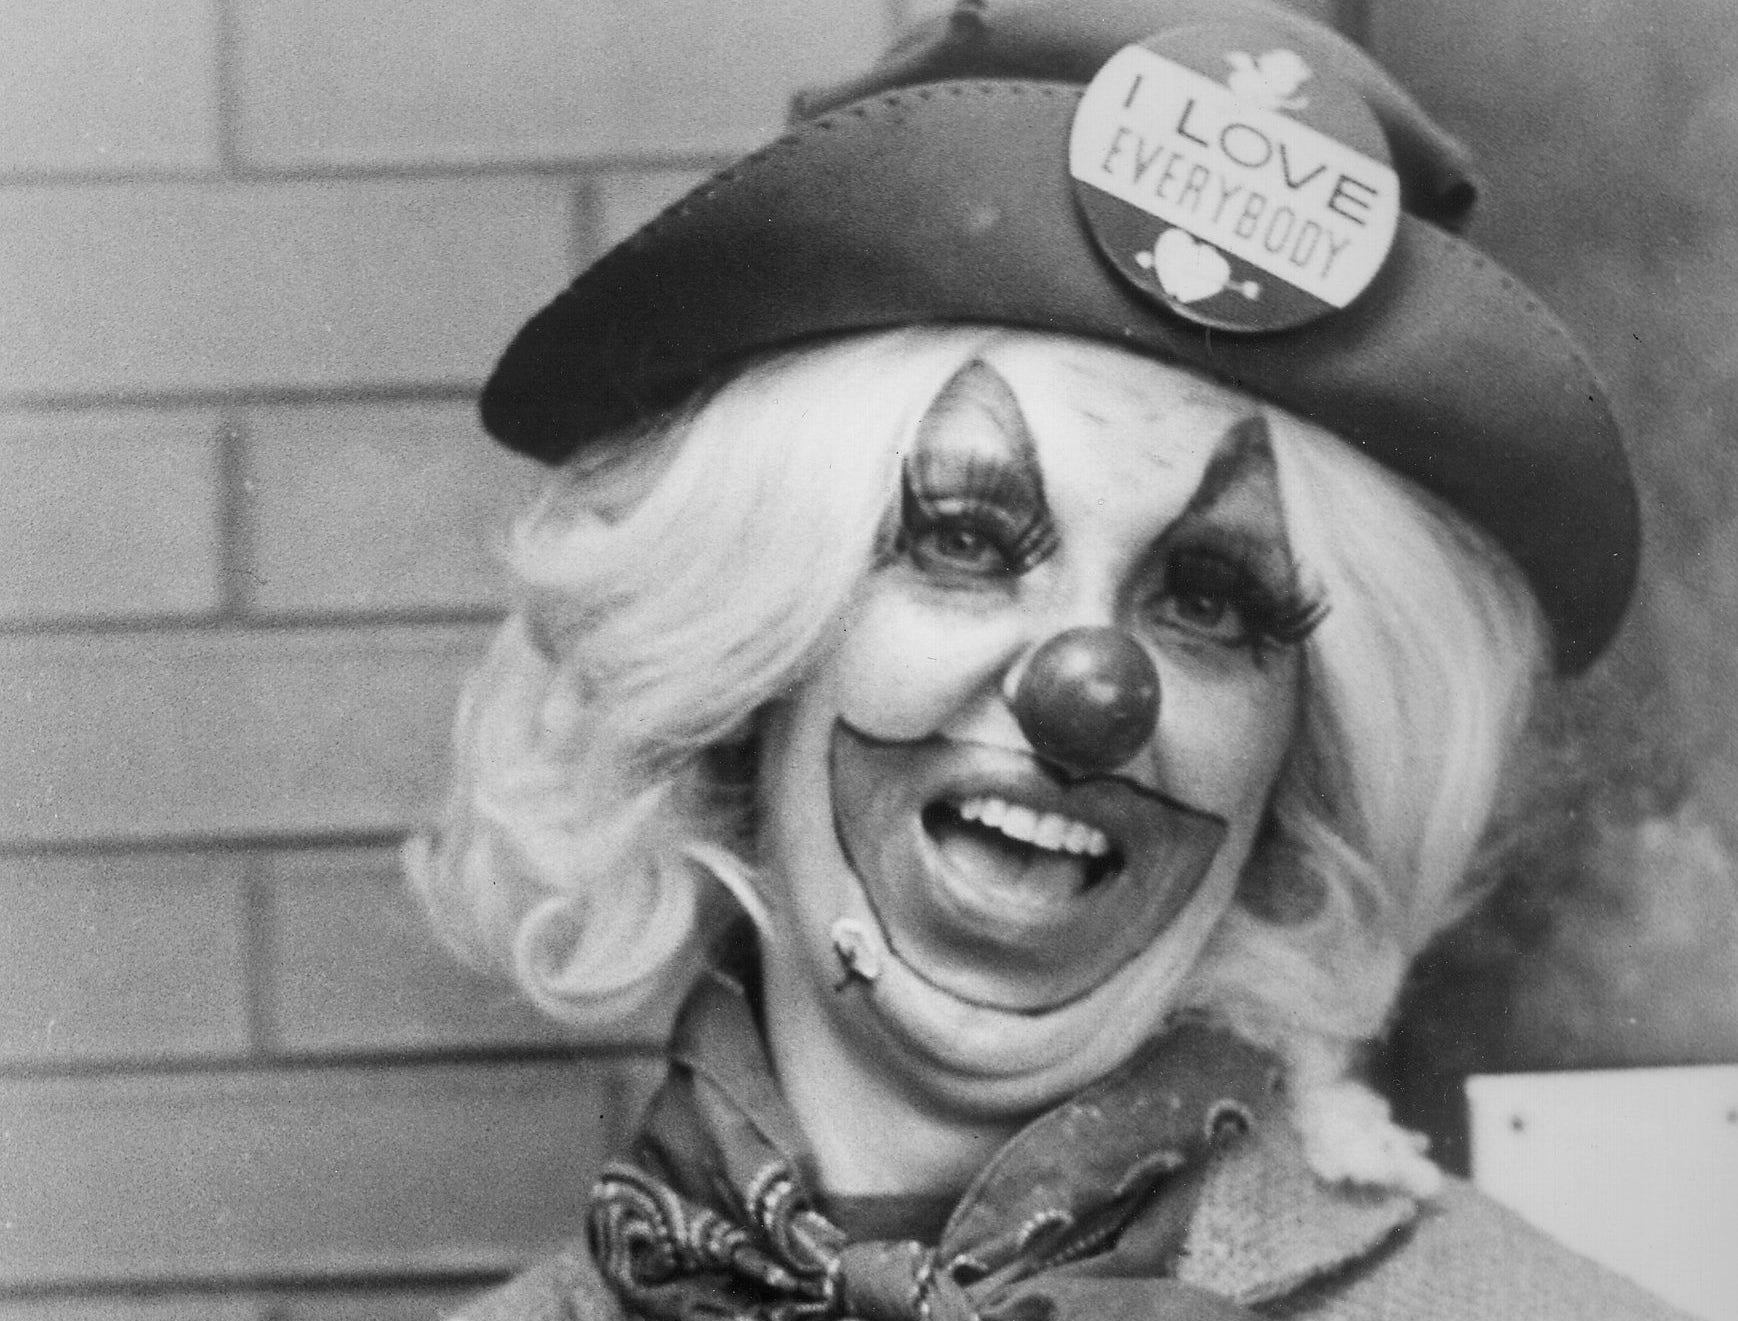 """Lydia Slentz as  """"Susie The Clown"""" brought smiles to faces of participants at Memphis Cotton Carnival events in April 1974.  She also made appearances with Danny Thomas at St. Jude Children's Research Hospital."""